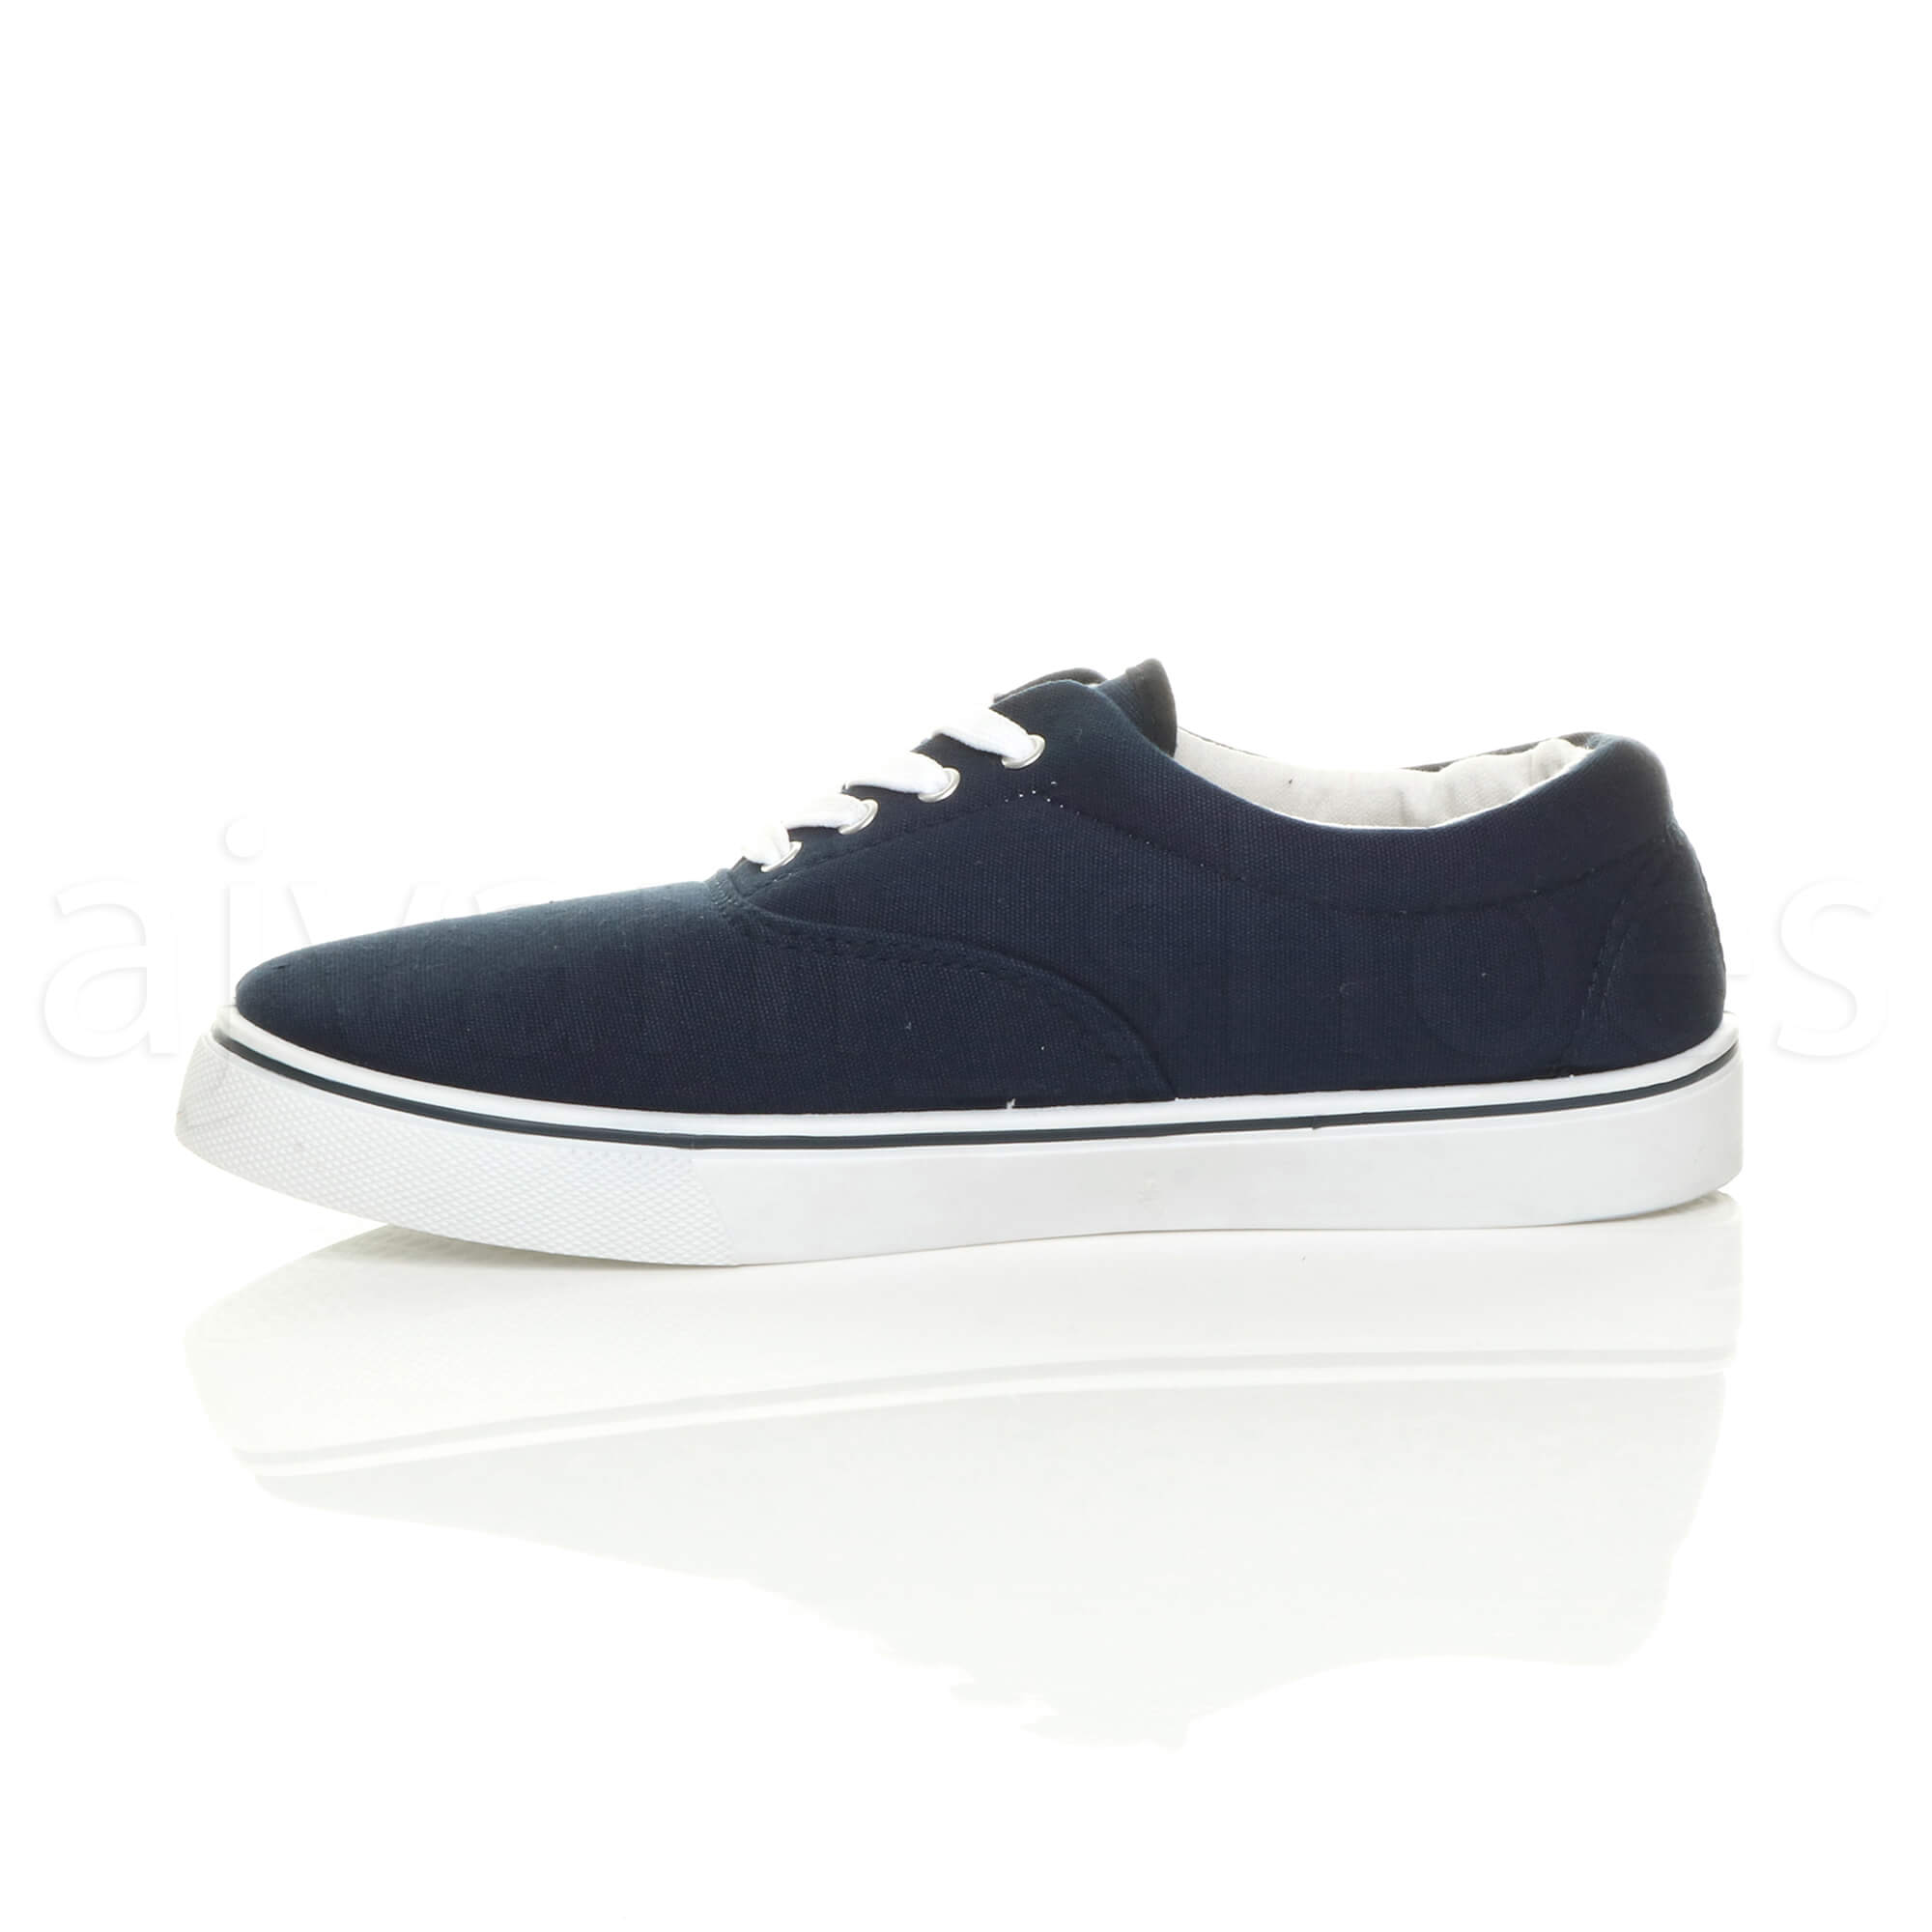 MENS-CANVAS-CASUAL-TRAINERS-PLIMSOLES-PLIMSOLLS-SHOES-LACE-UP-PUMPS-SIZE thumbnail 9